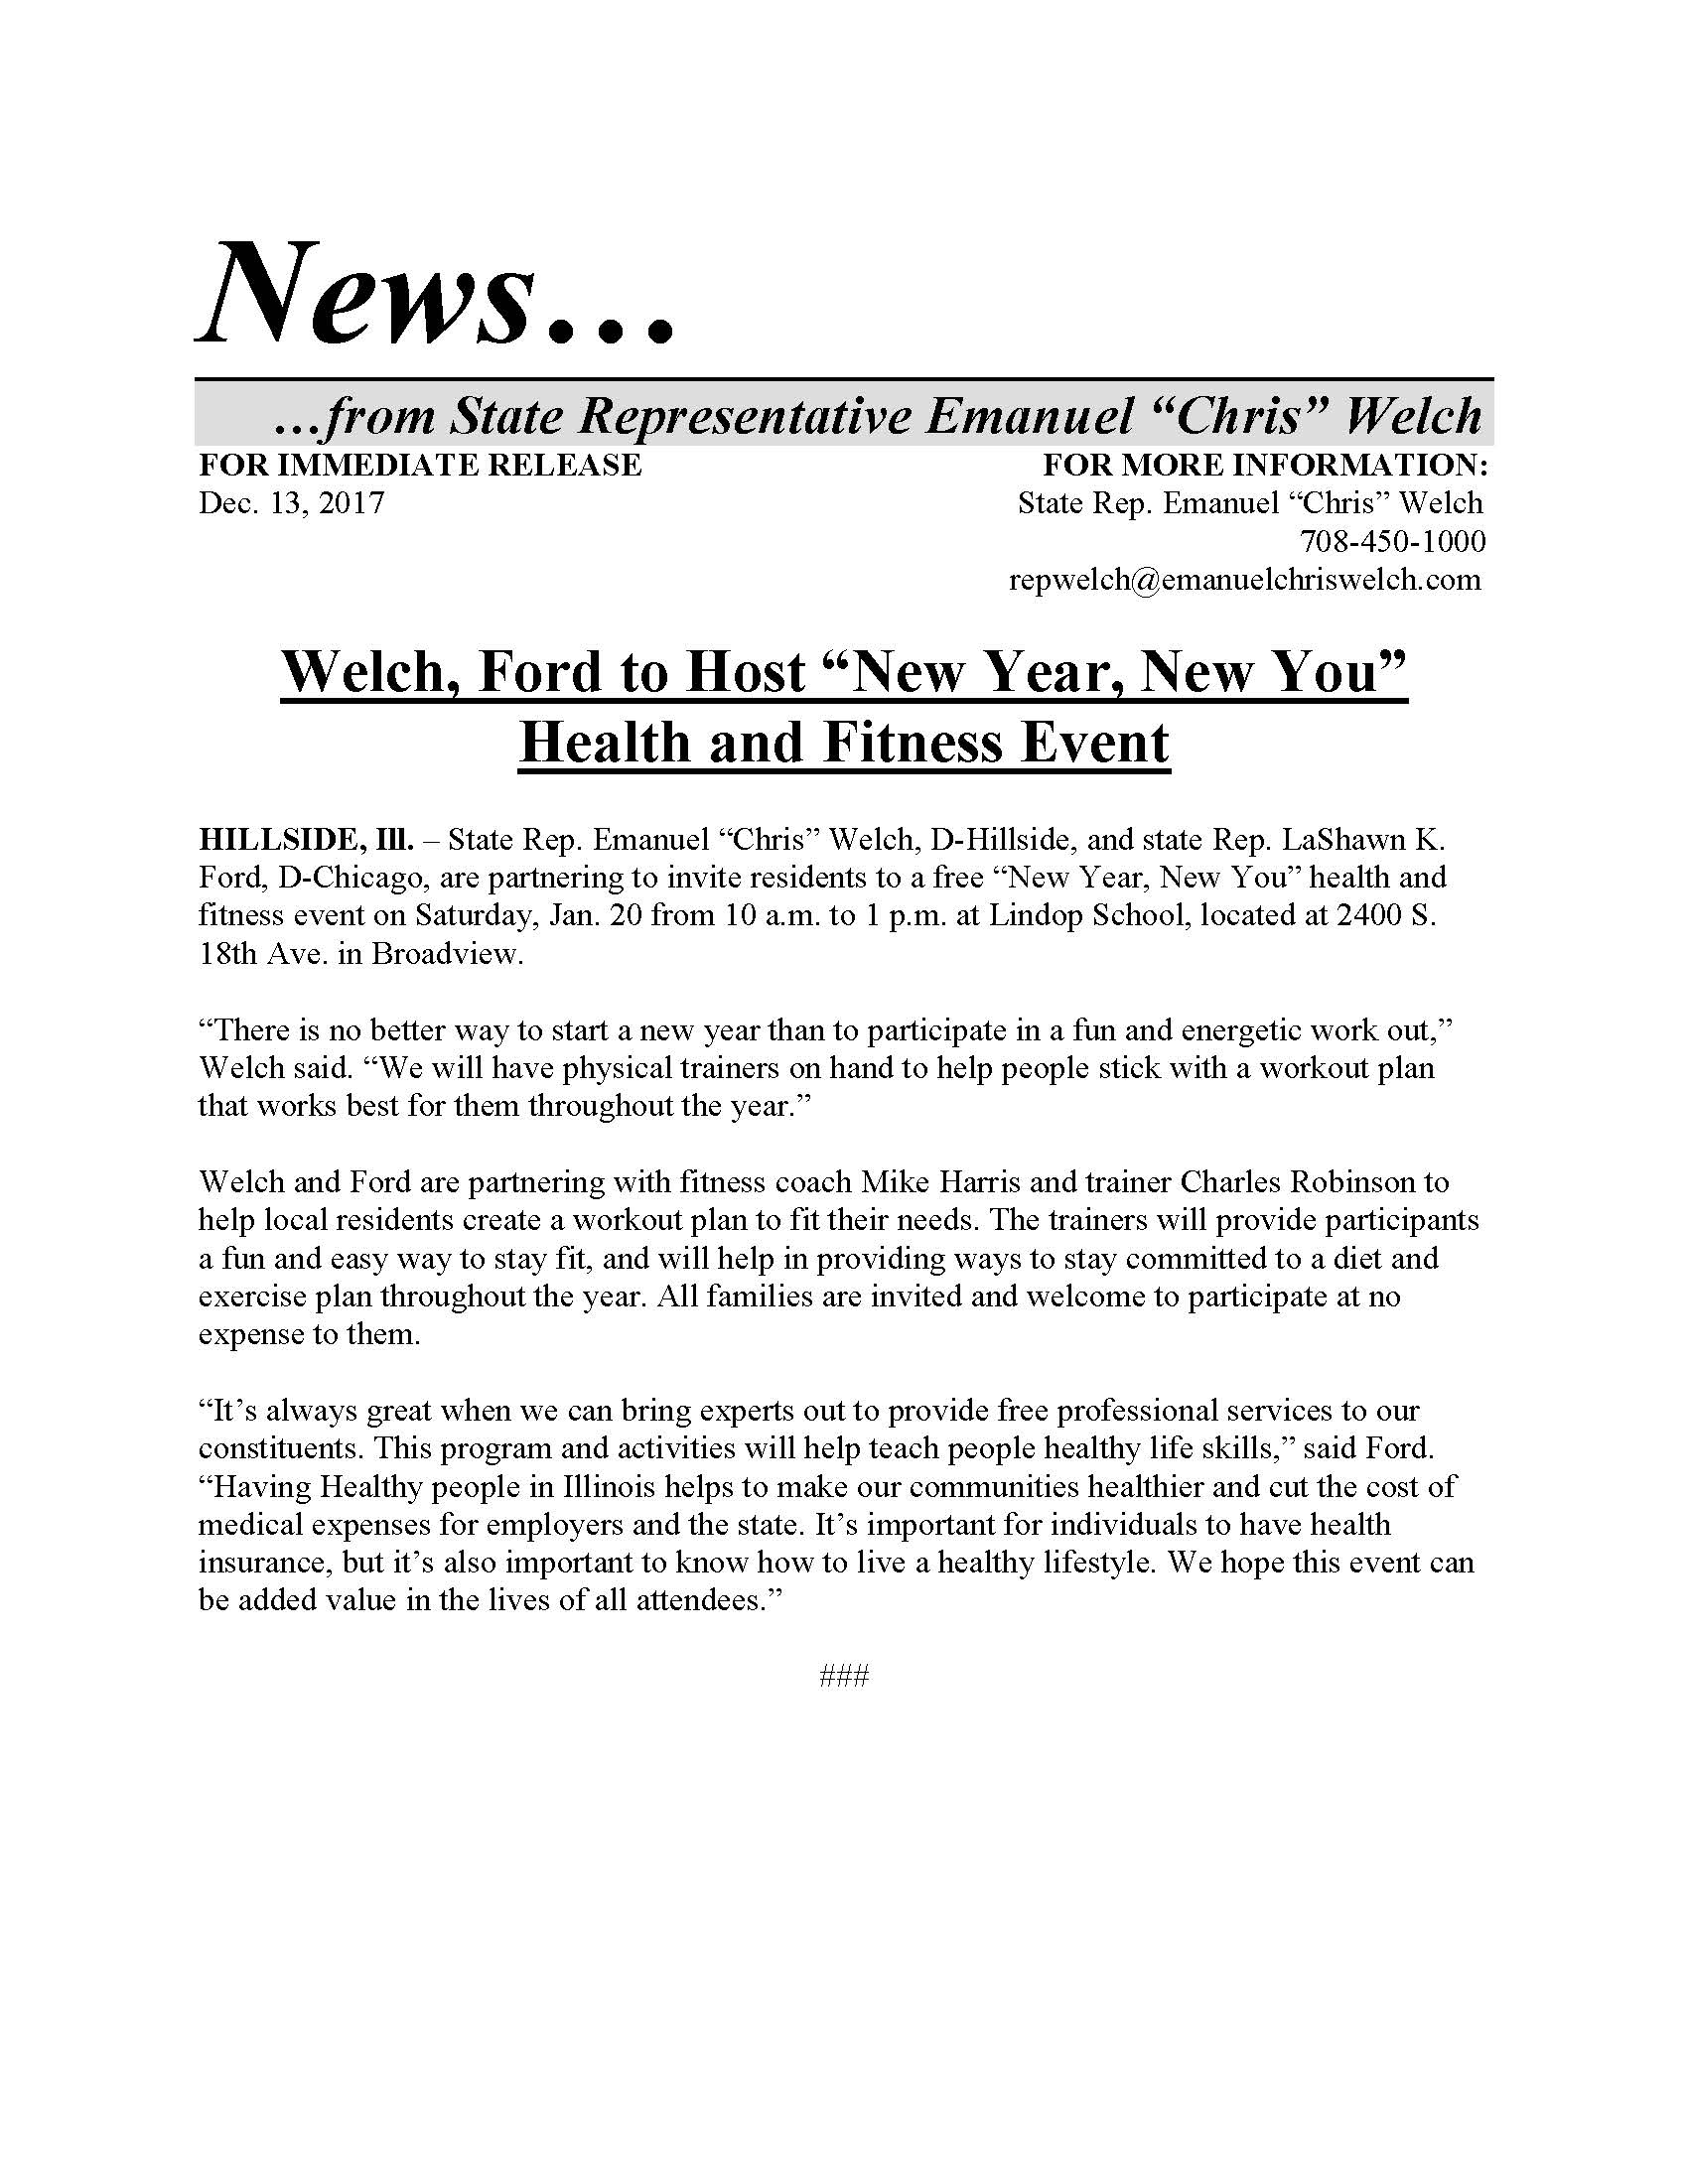 """Welch, Ford to Host """"New Year, New You"""" Health and Fitness Event  (December 13, 2017)"""